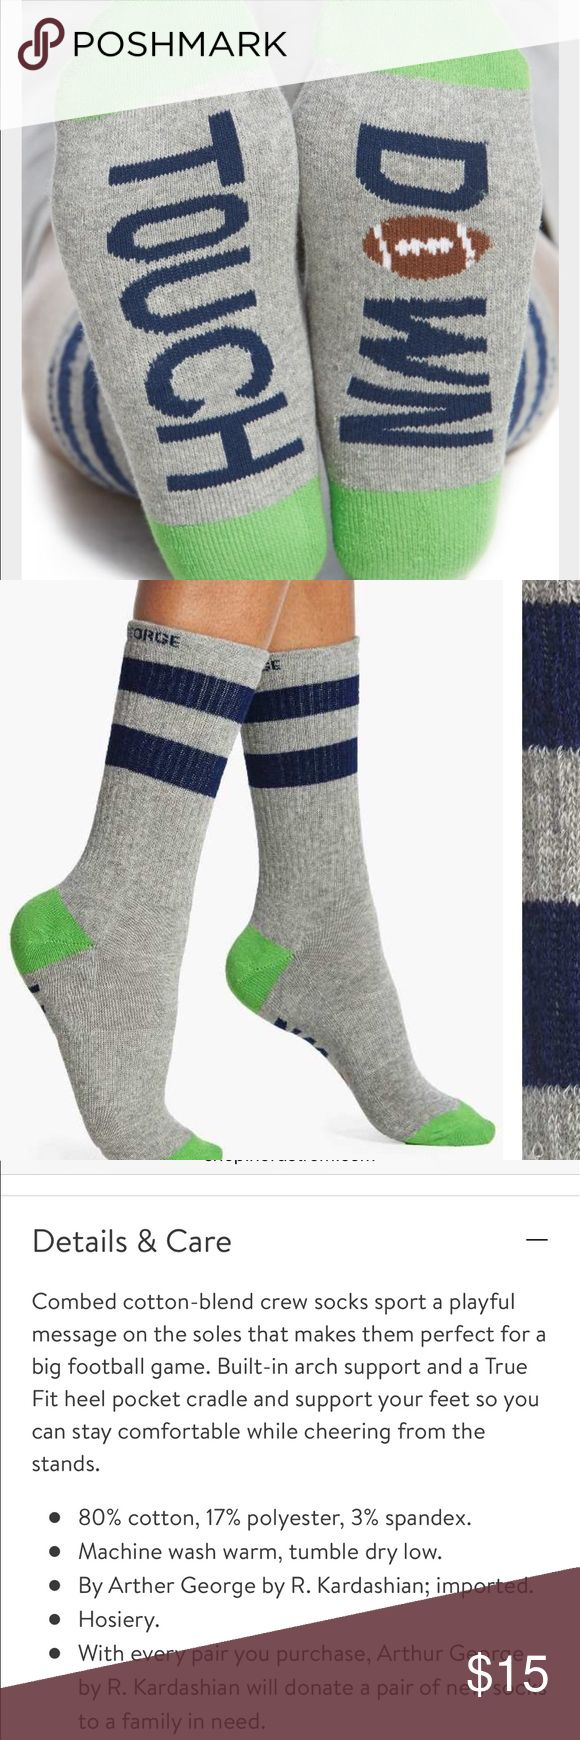 Arthur George Touchdown socks Arthur George Touchdown socks  NWT stock photo for image only please see color of actual socks Arthur George Accessories Hosiery & Socks